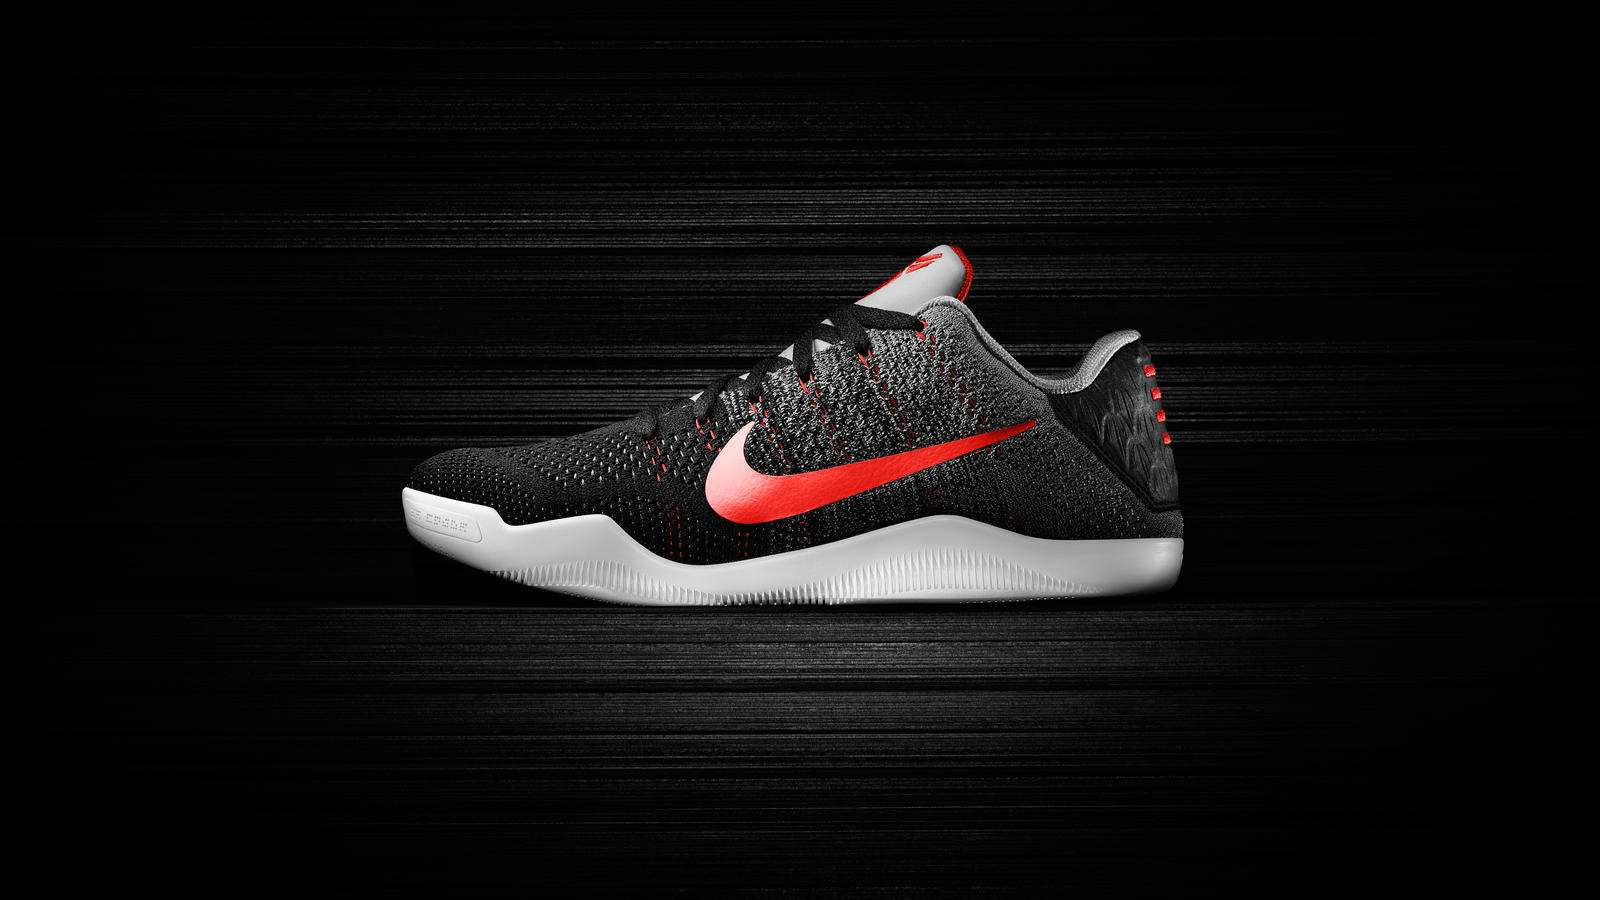 16 130 nike kobe 822675 060 profile 05 hd 1600